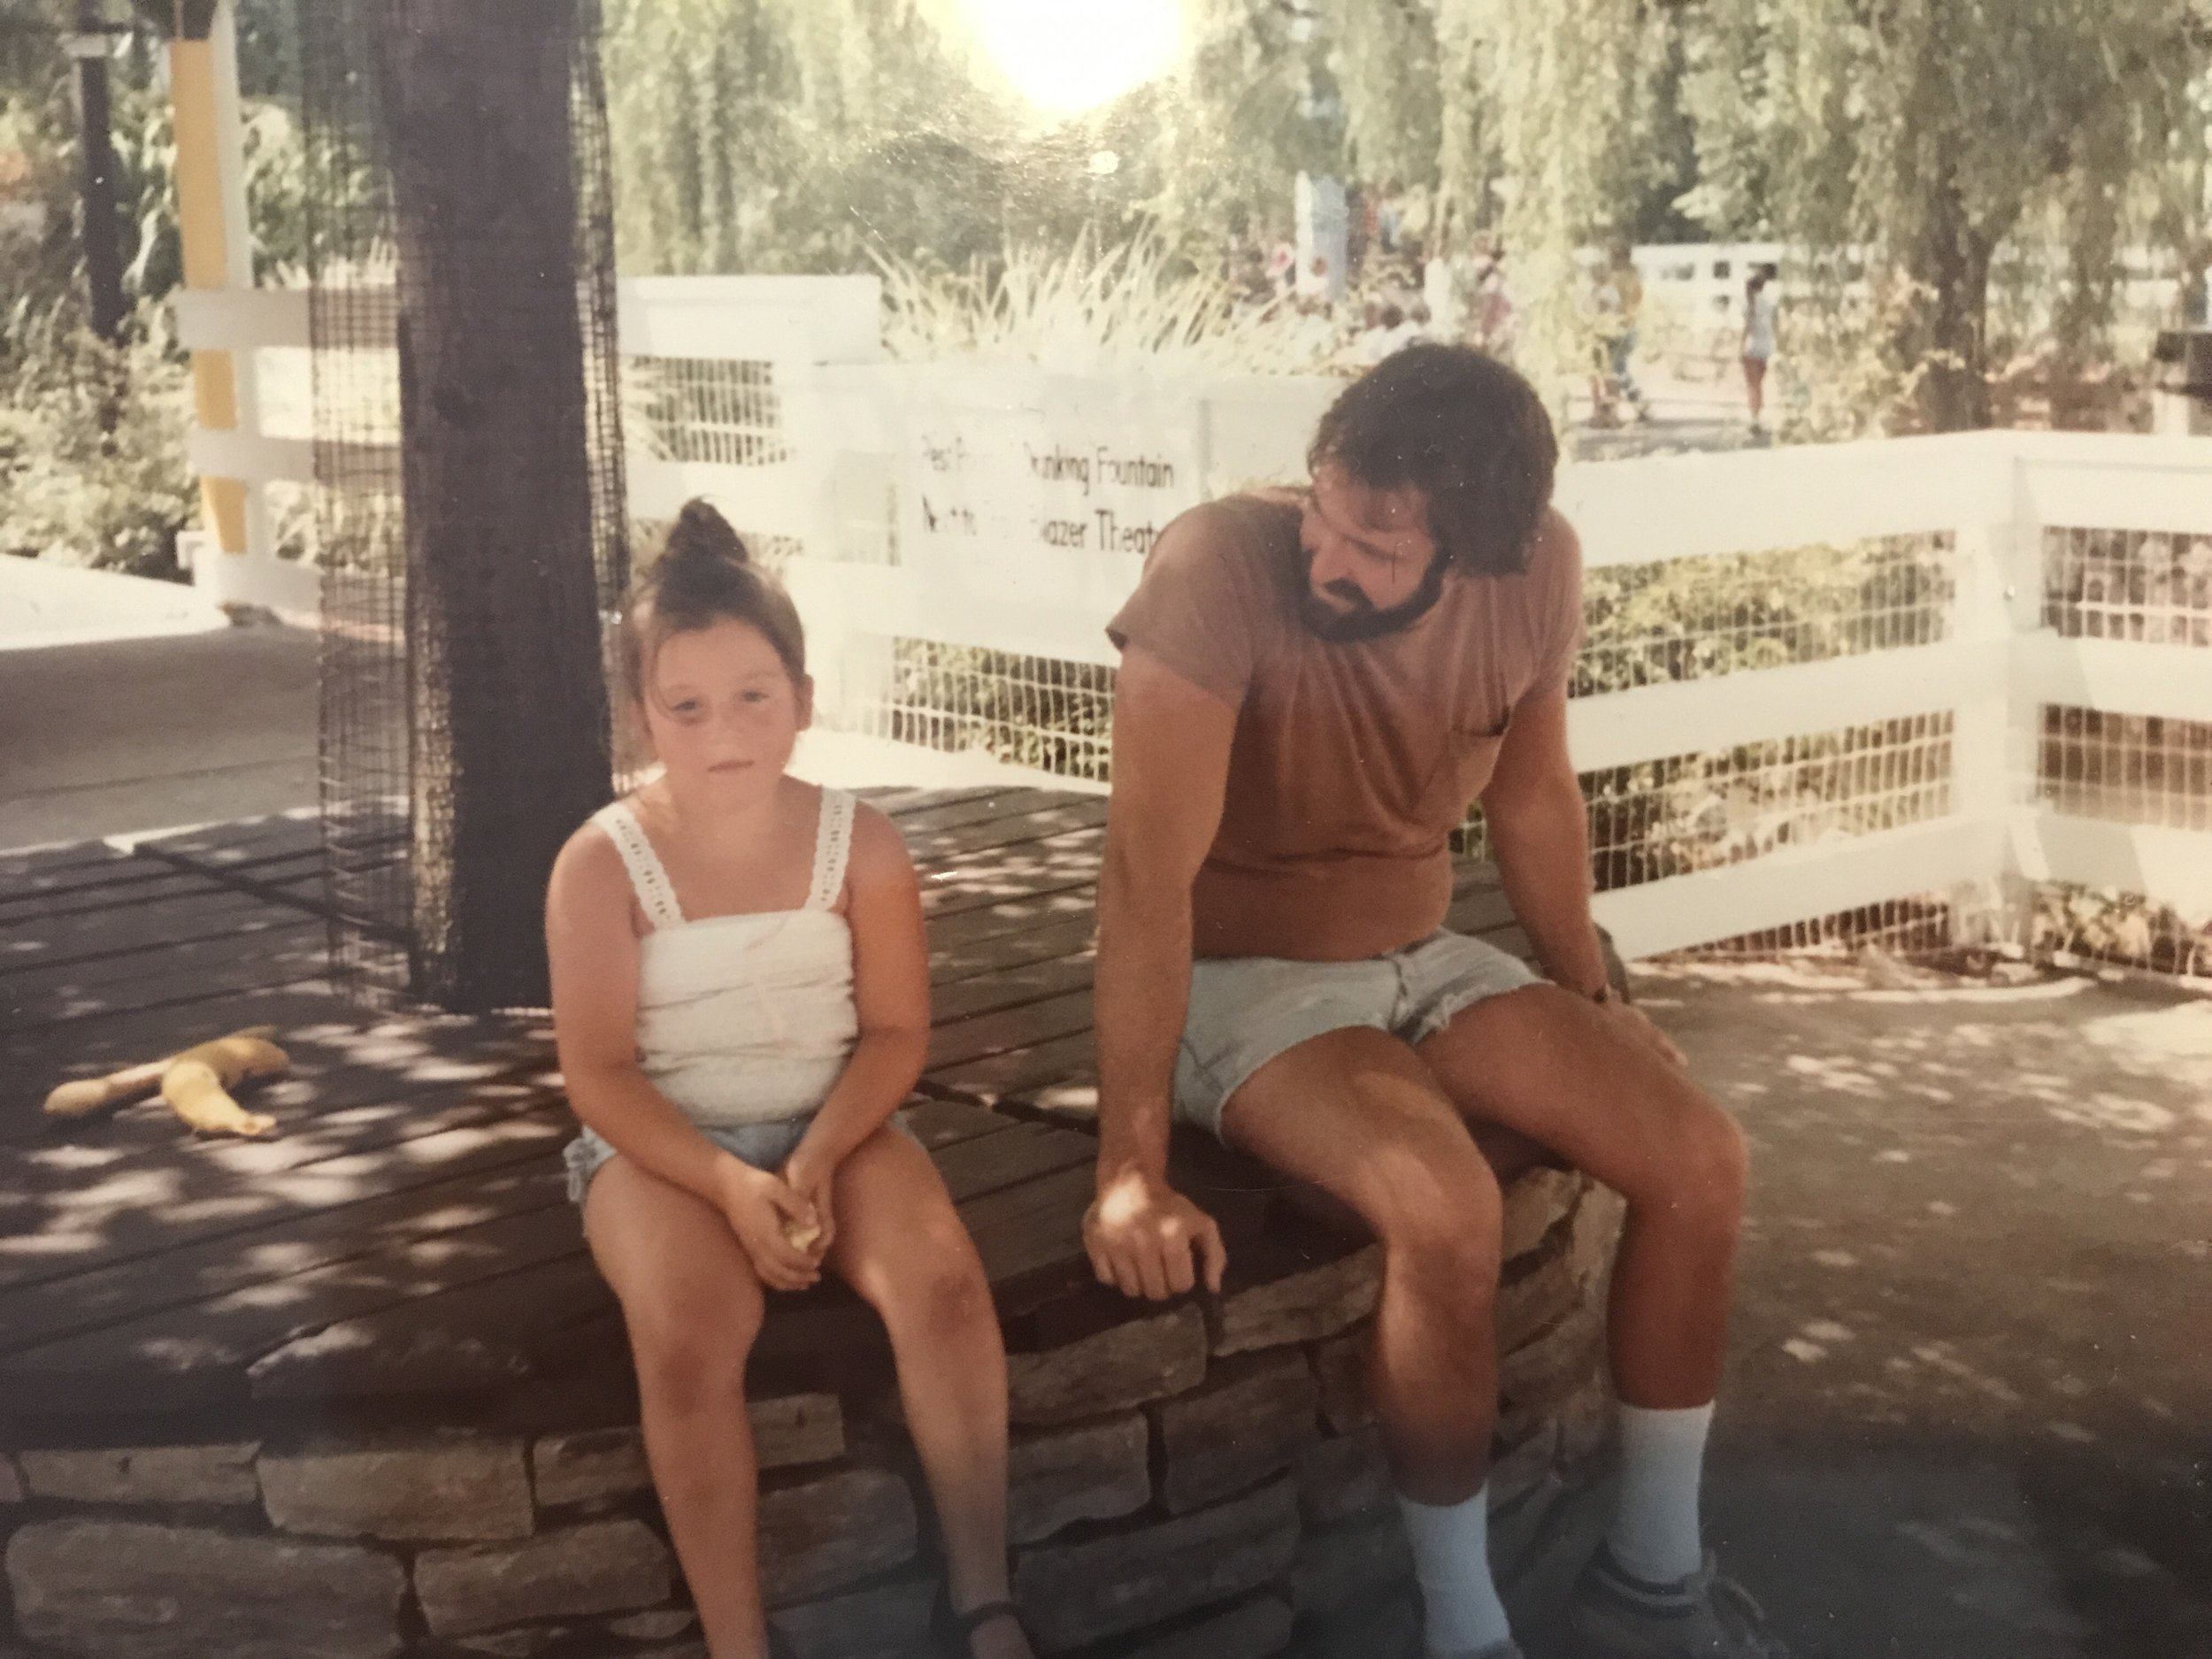 Like this picture from circa 8 years old, my dad will always be beside me when my knees are dirty and I'm exhausted by life.